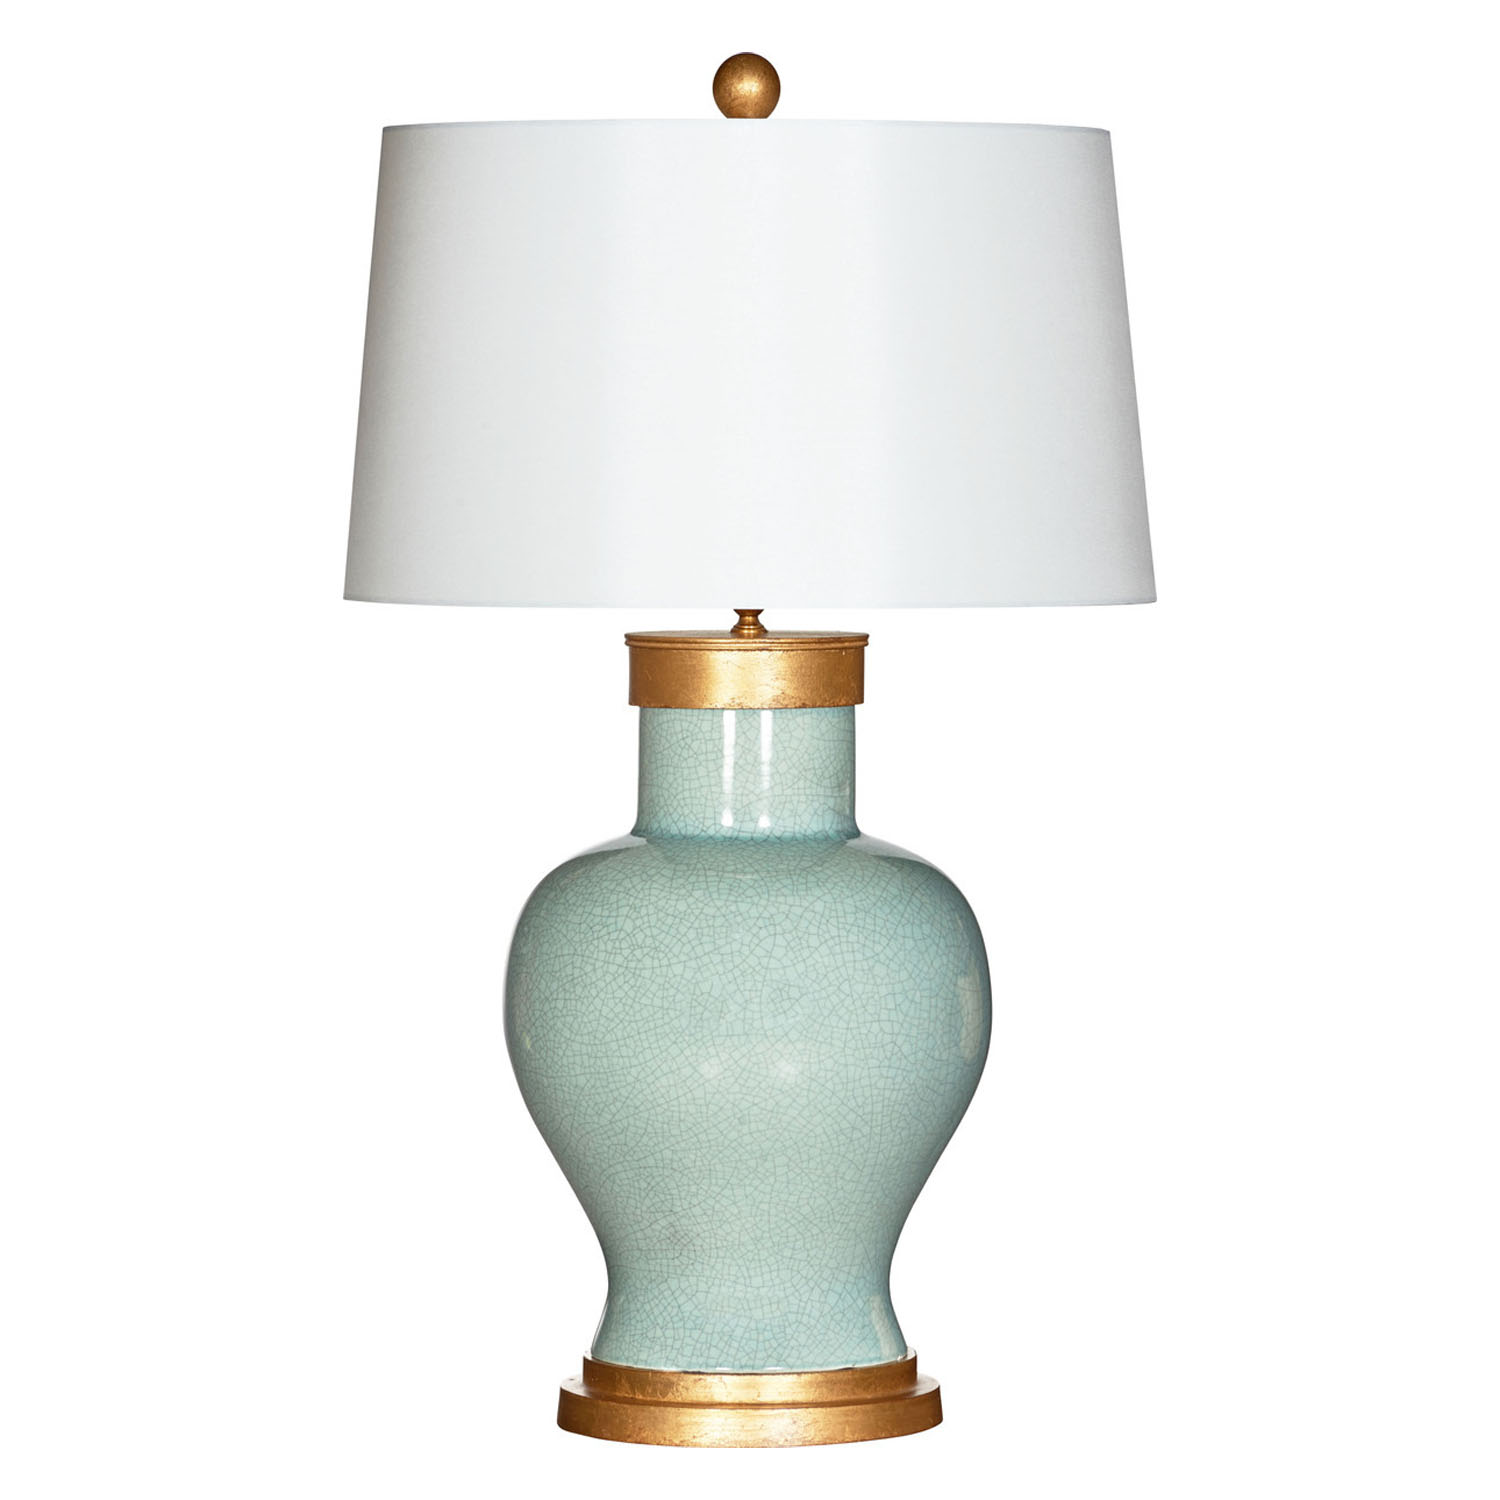 Celadon Cove Table Lamp